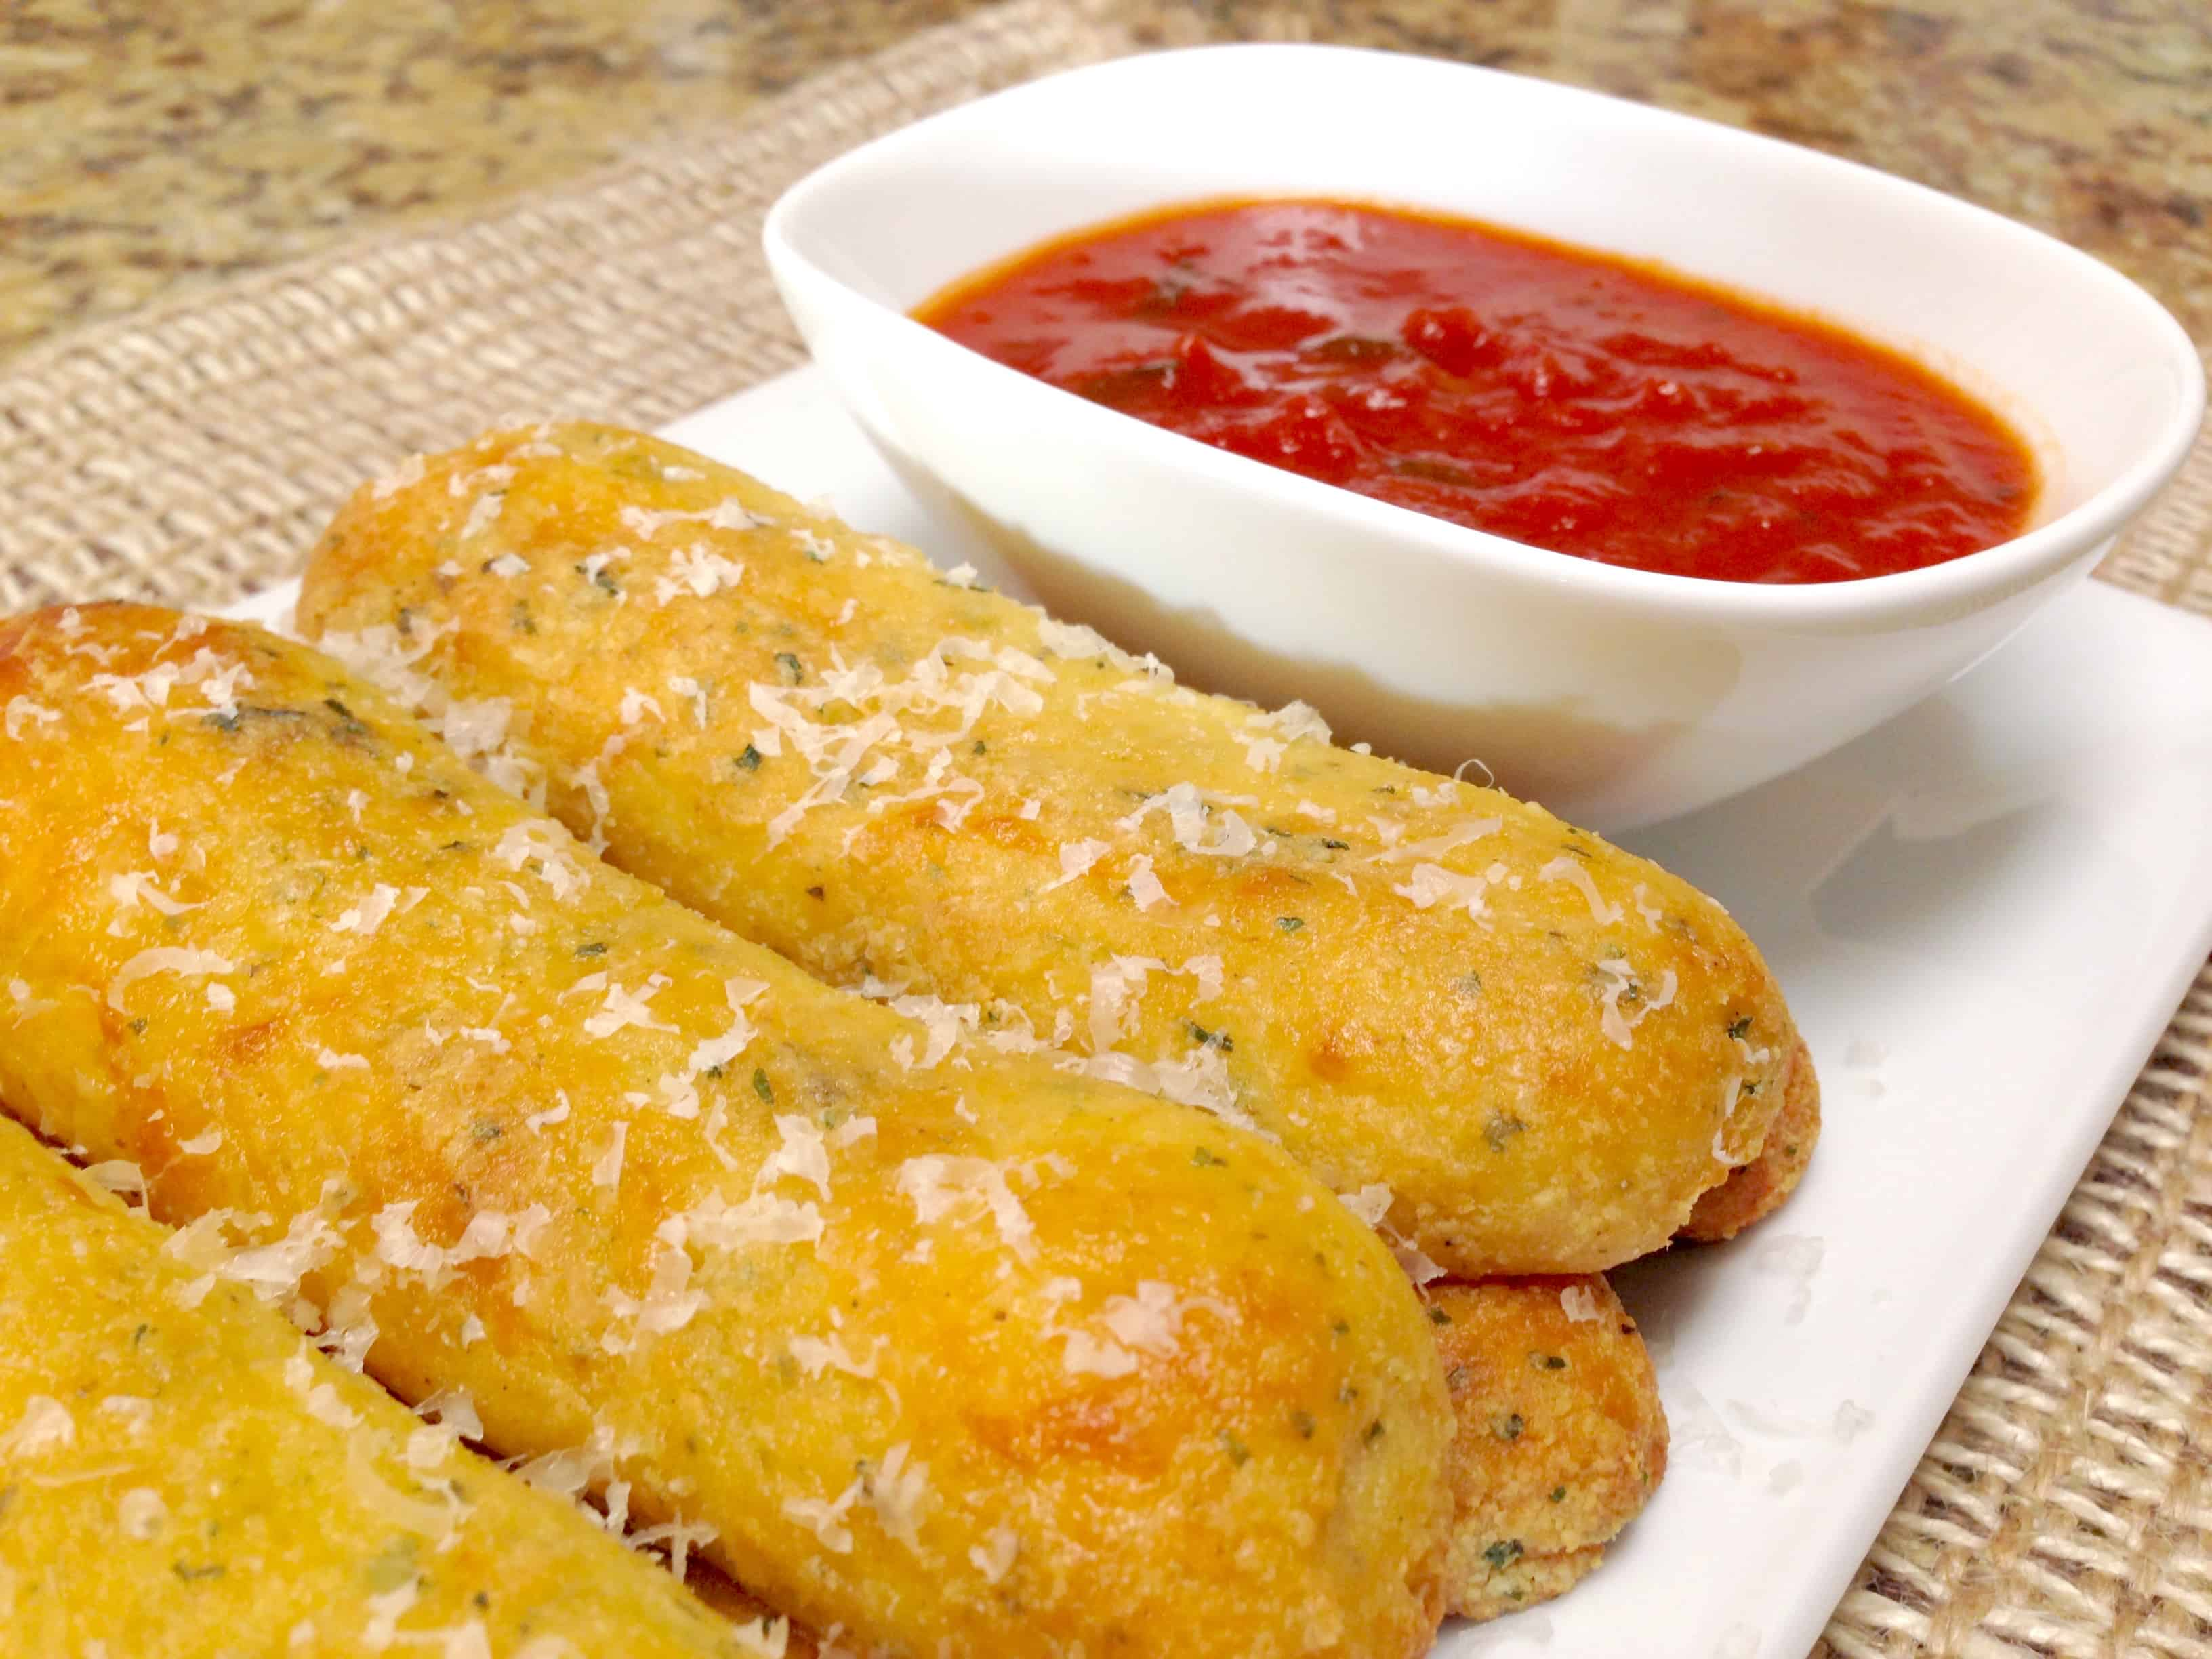 Italian breadsticks - Keto, low carb and gluten free